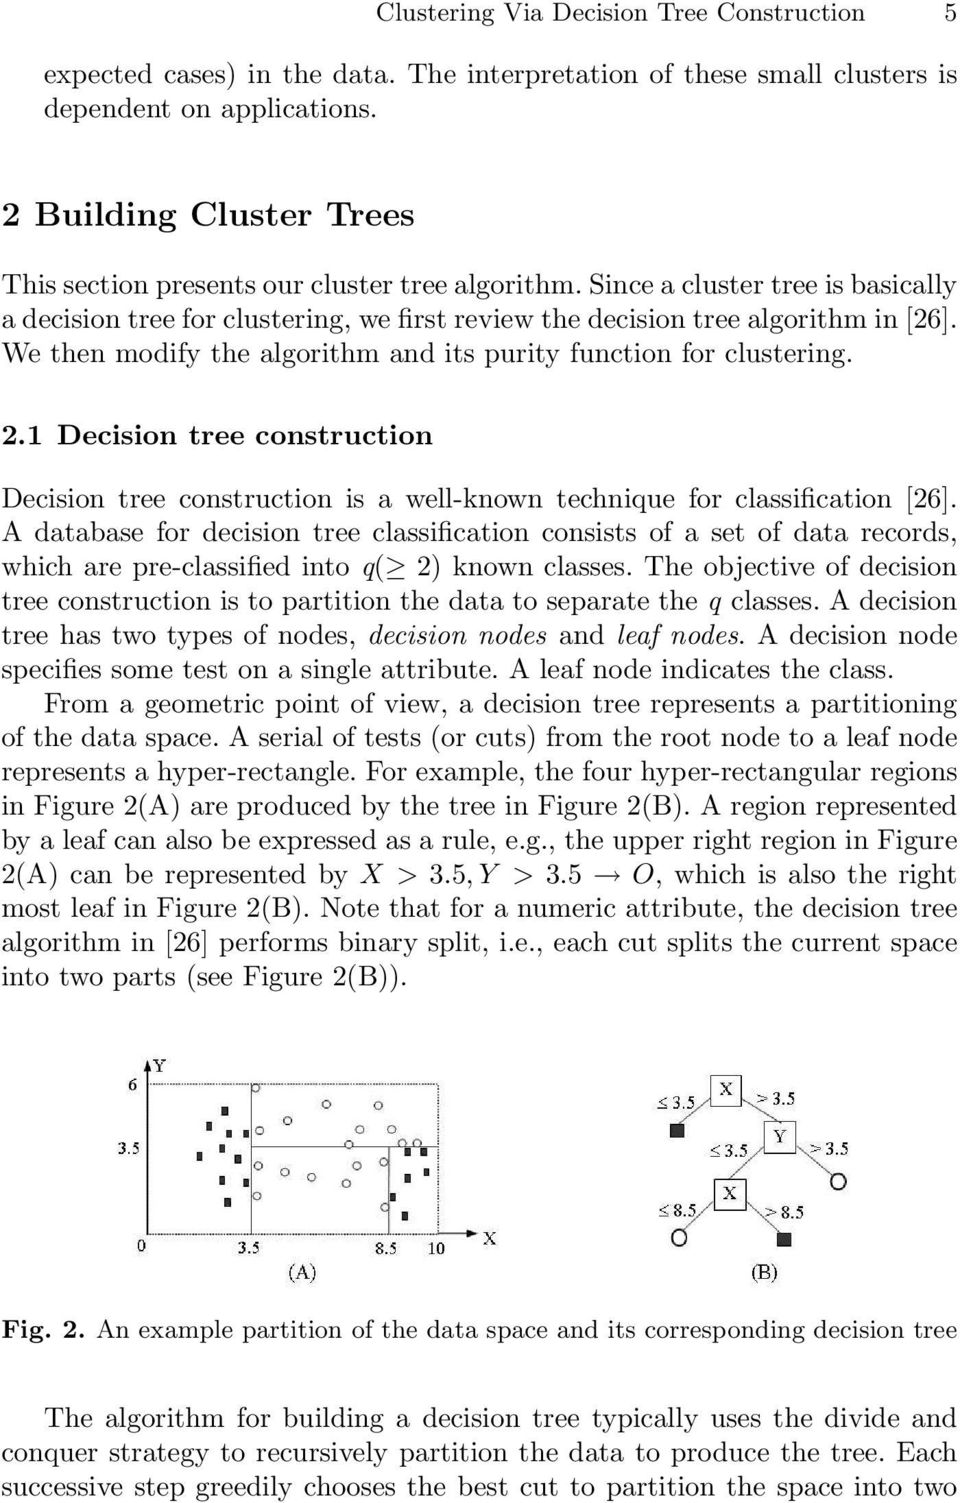 We then modify the algorithm and its purity function for clustering. 2.1 Decision tree construction Decision tree construction is a well-known technique for classification [26].